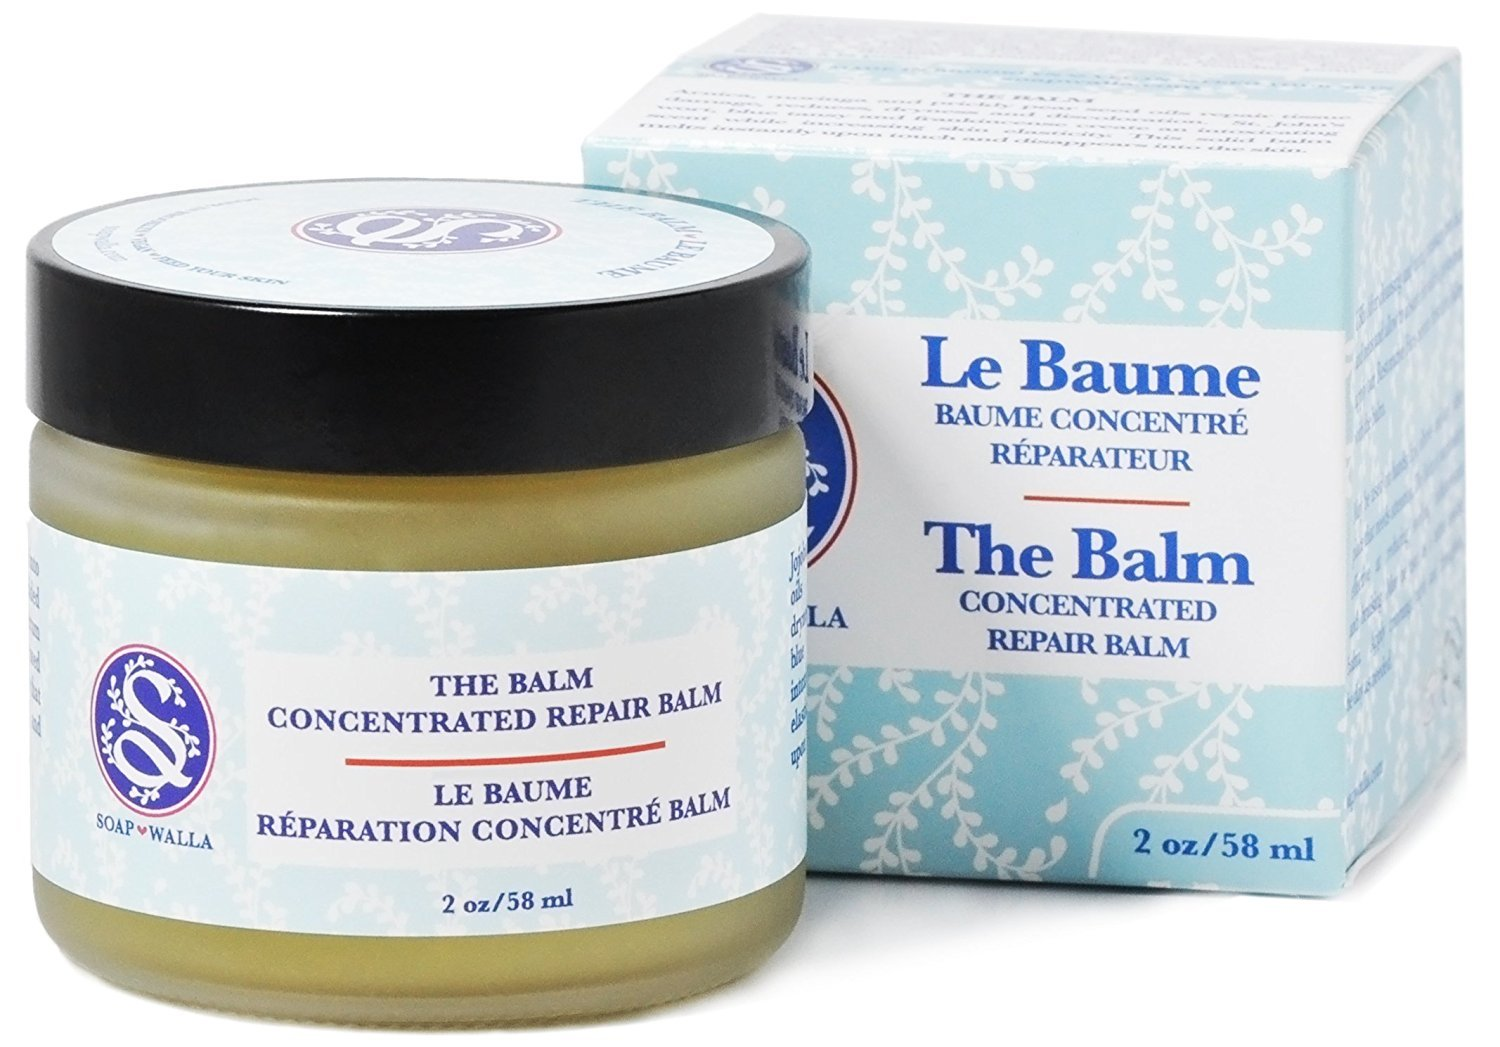 Soapwalla - All Natural/Organic The Balm - Concentrated Repair Balm (2 oz)